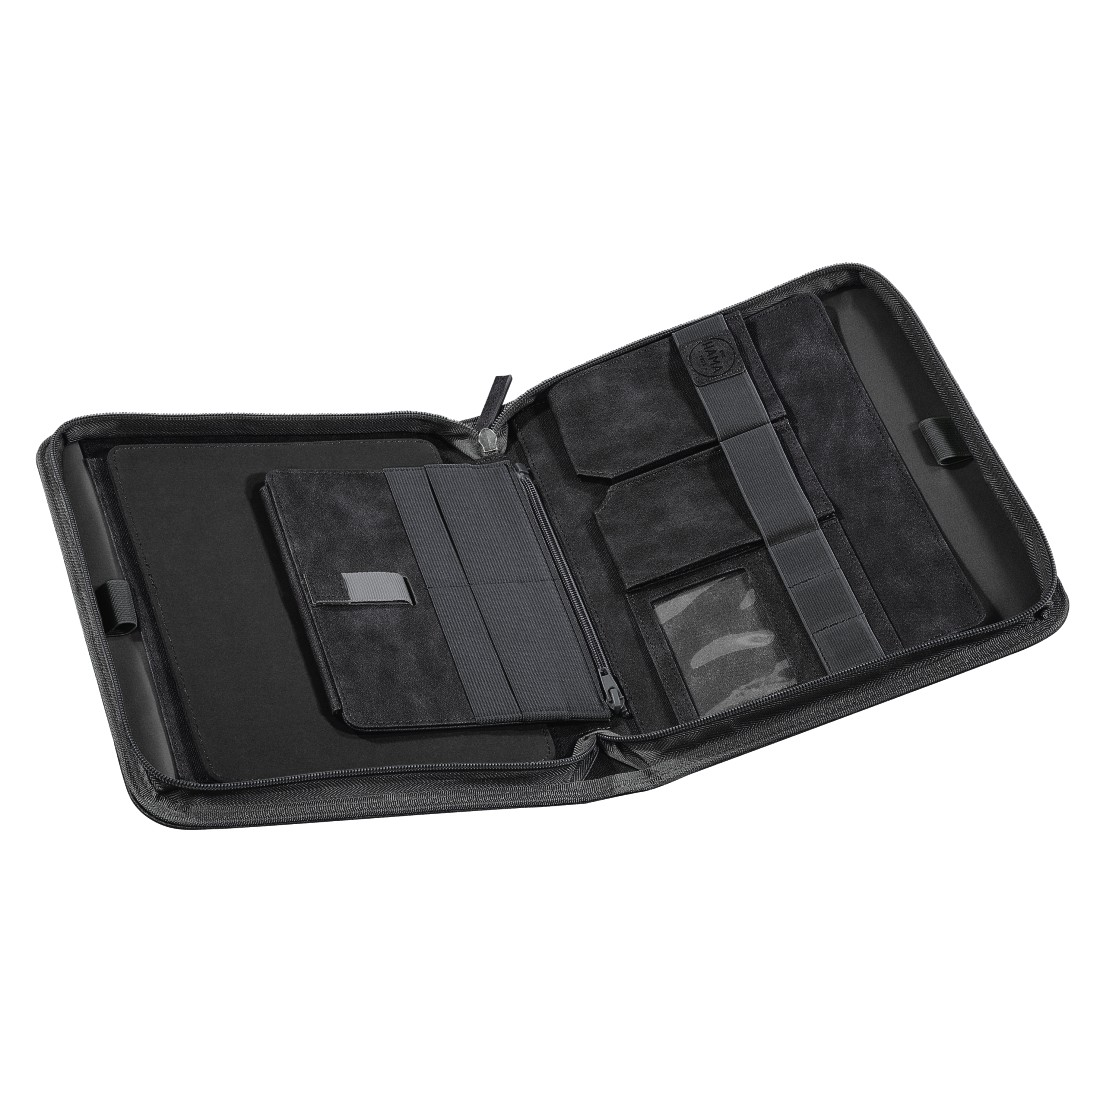 dex6 High-Res Detail 6 - Hama est. 1923, Hannover Tablet Organizer A5, washed anthracite